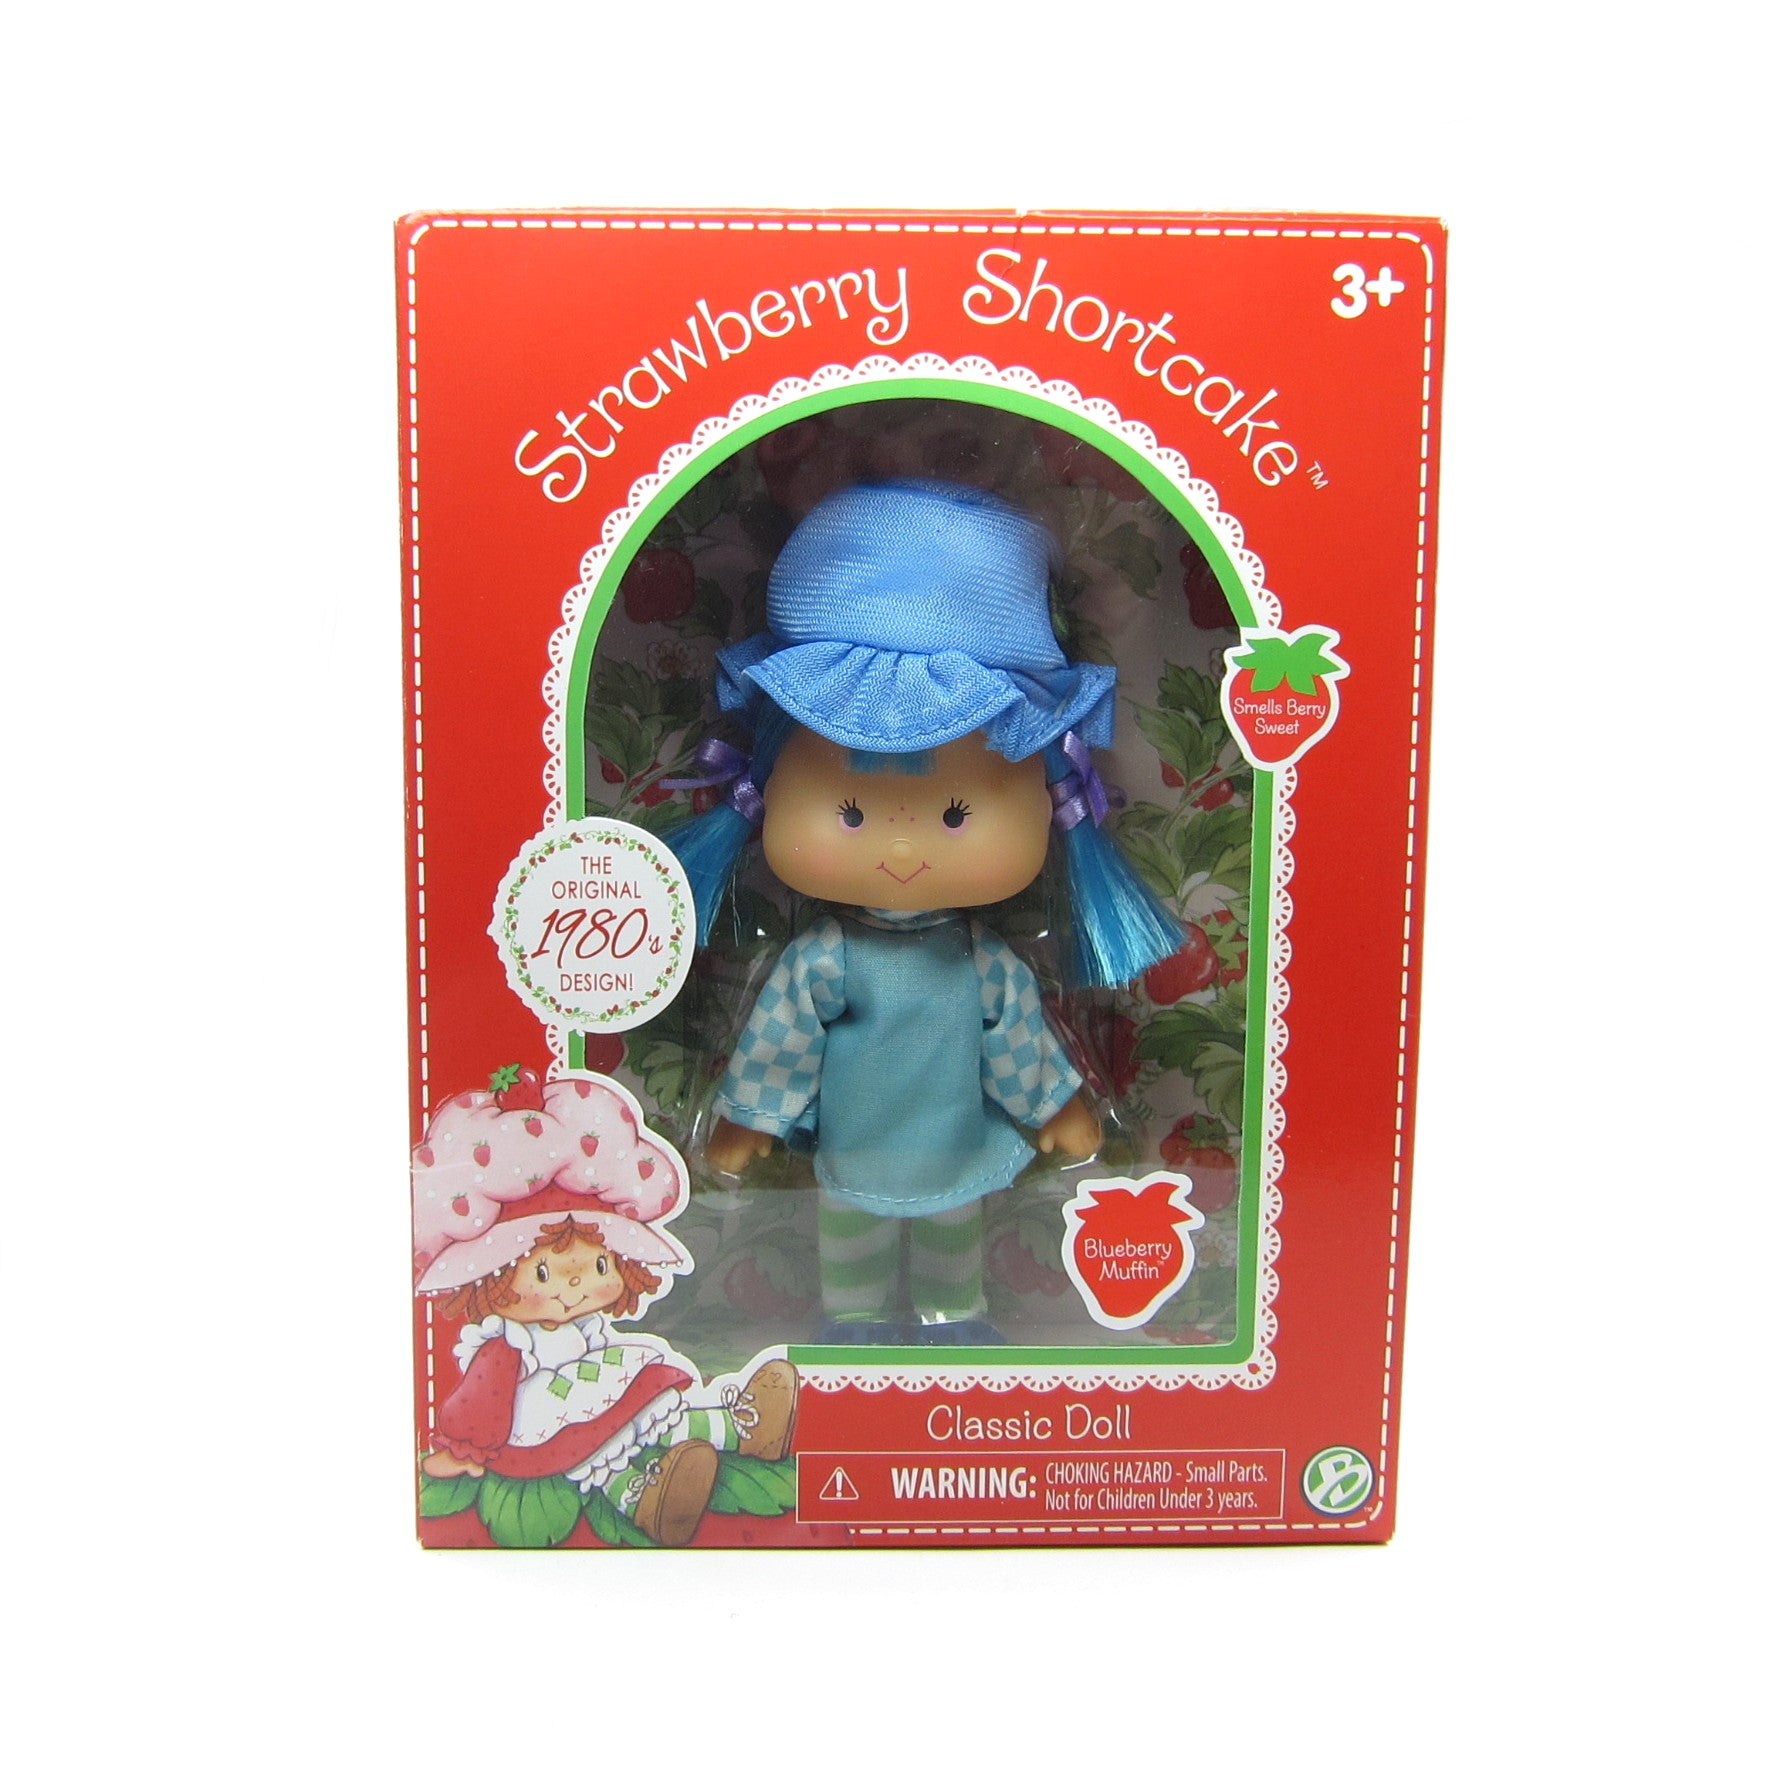 Blueberry Muffin 35th Birthday reissue classic doll